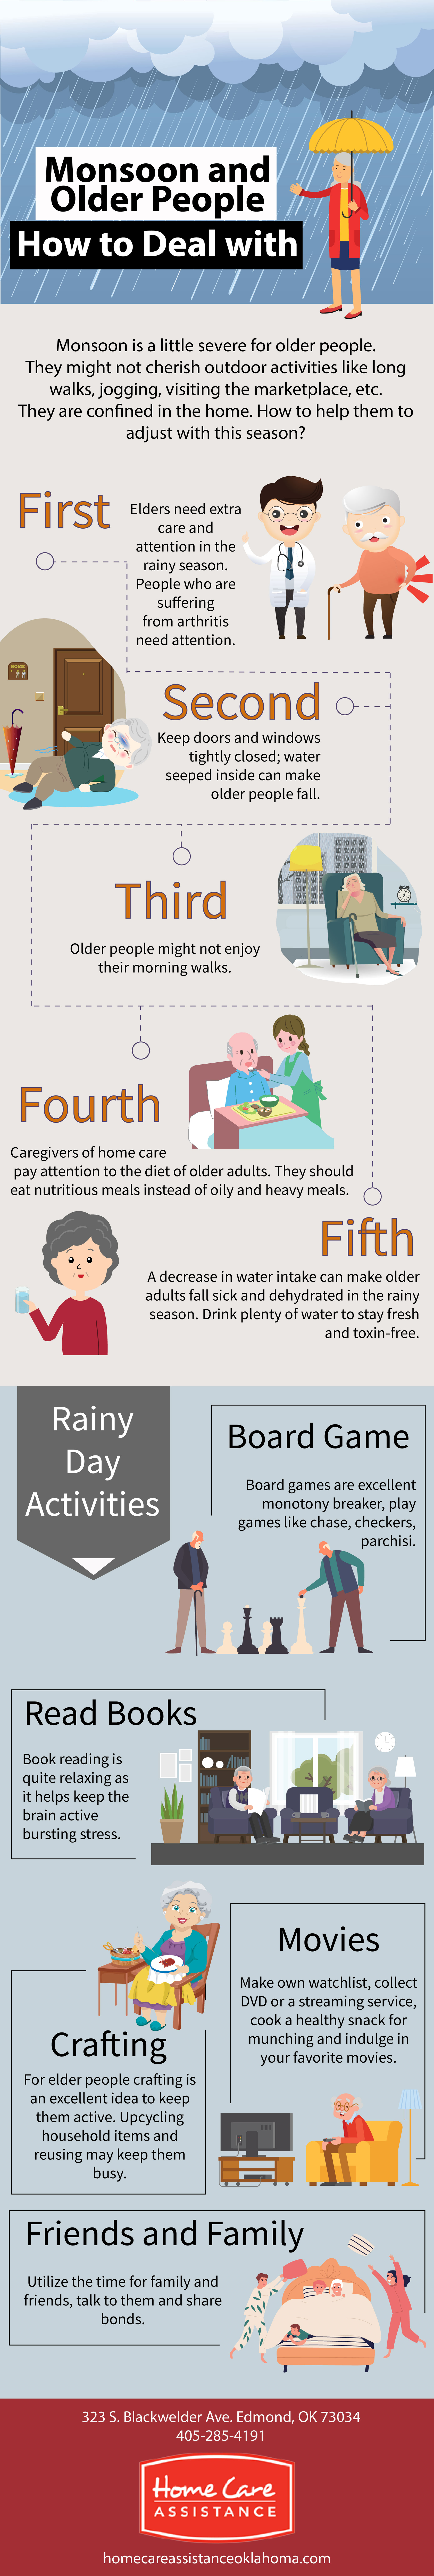 Monsoon and Older People